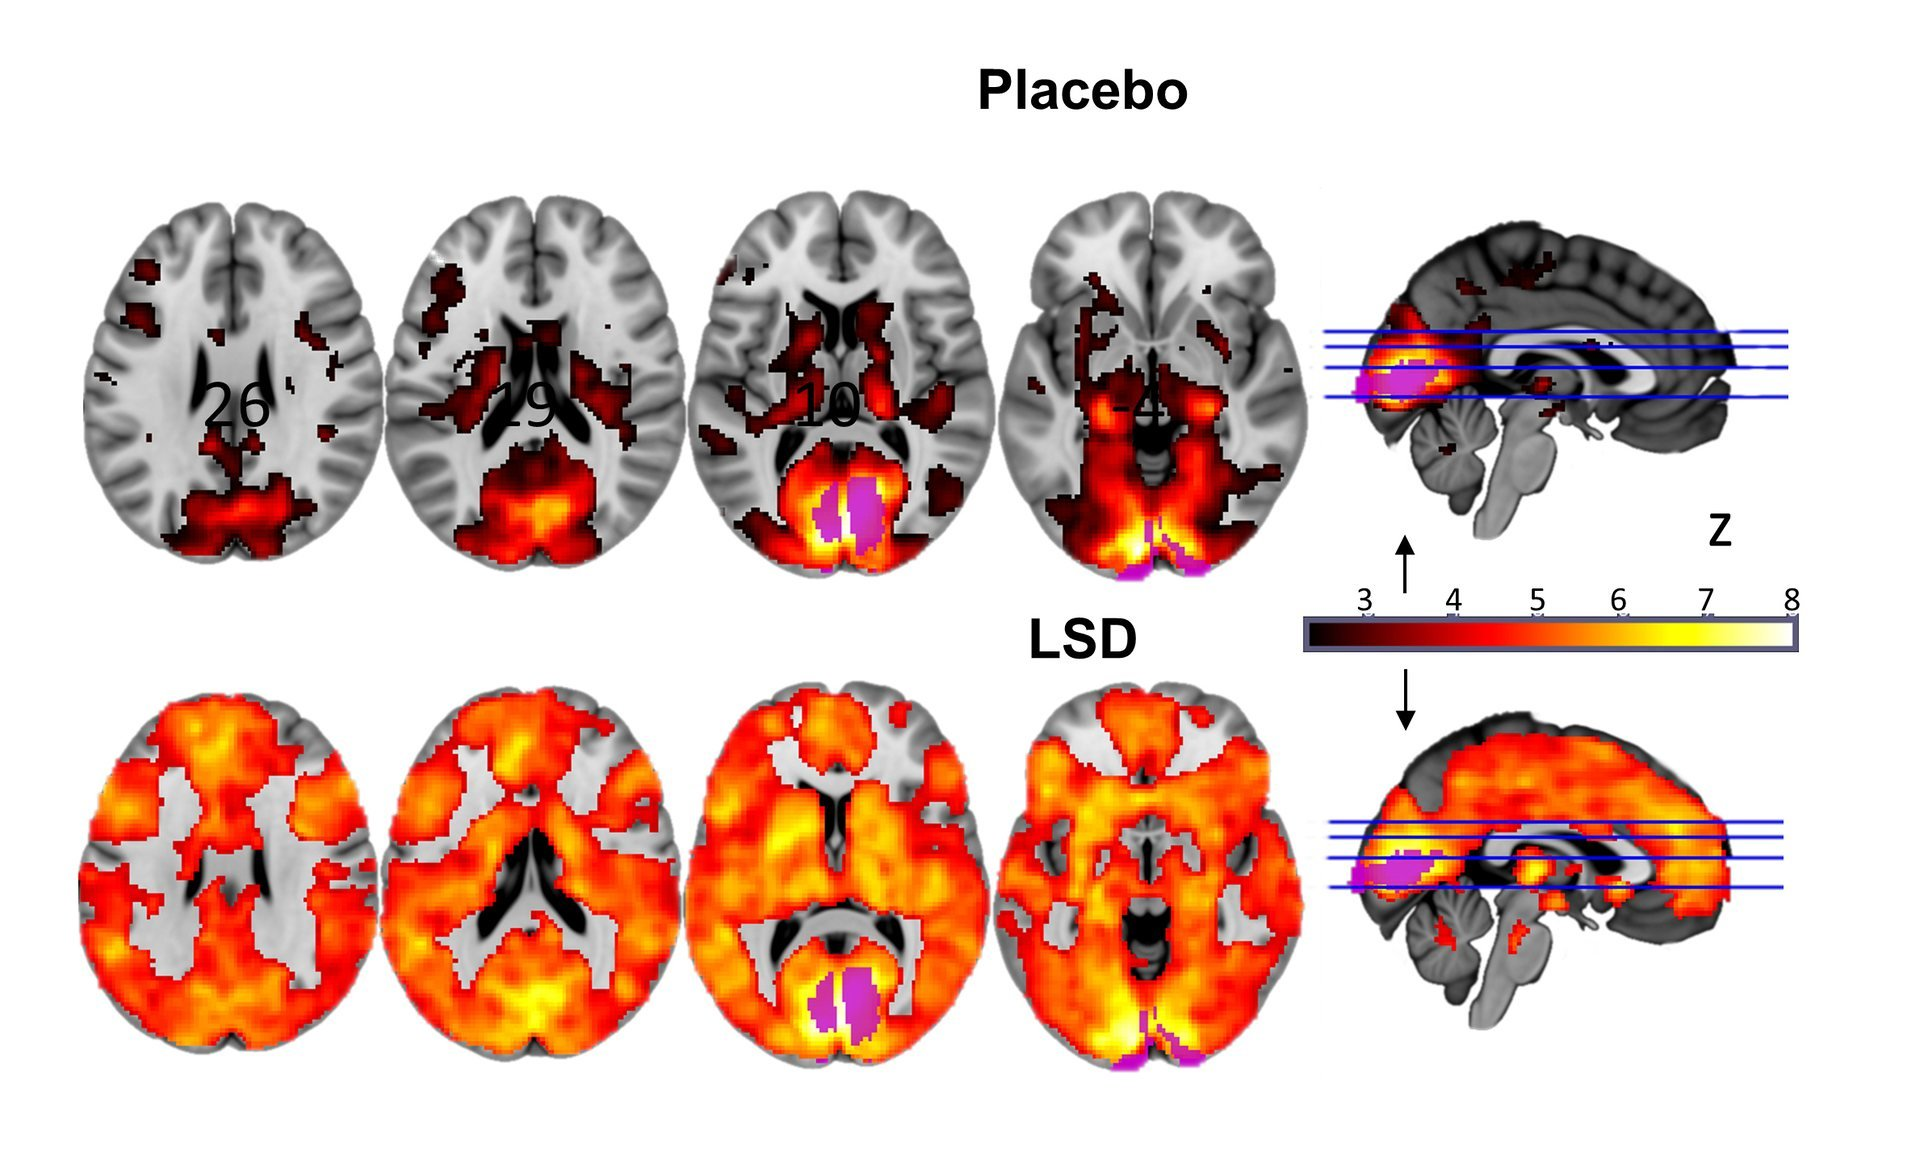 The top row shows a normal brain; the bottom shows a brain on LSD (note the orange flares of activity).